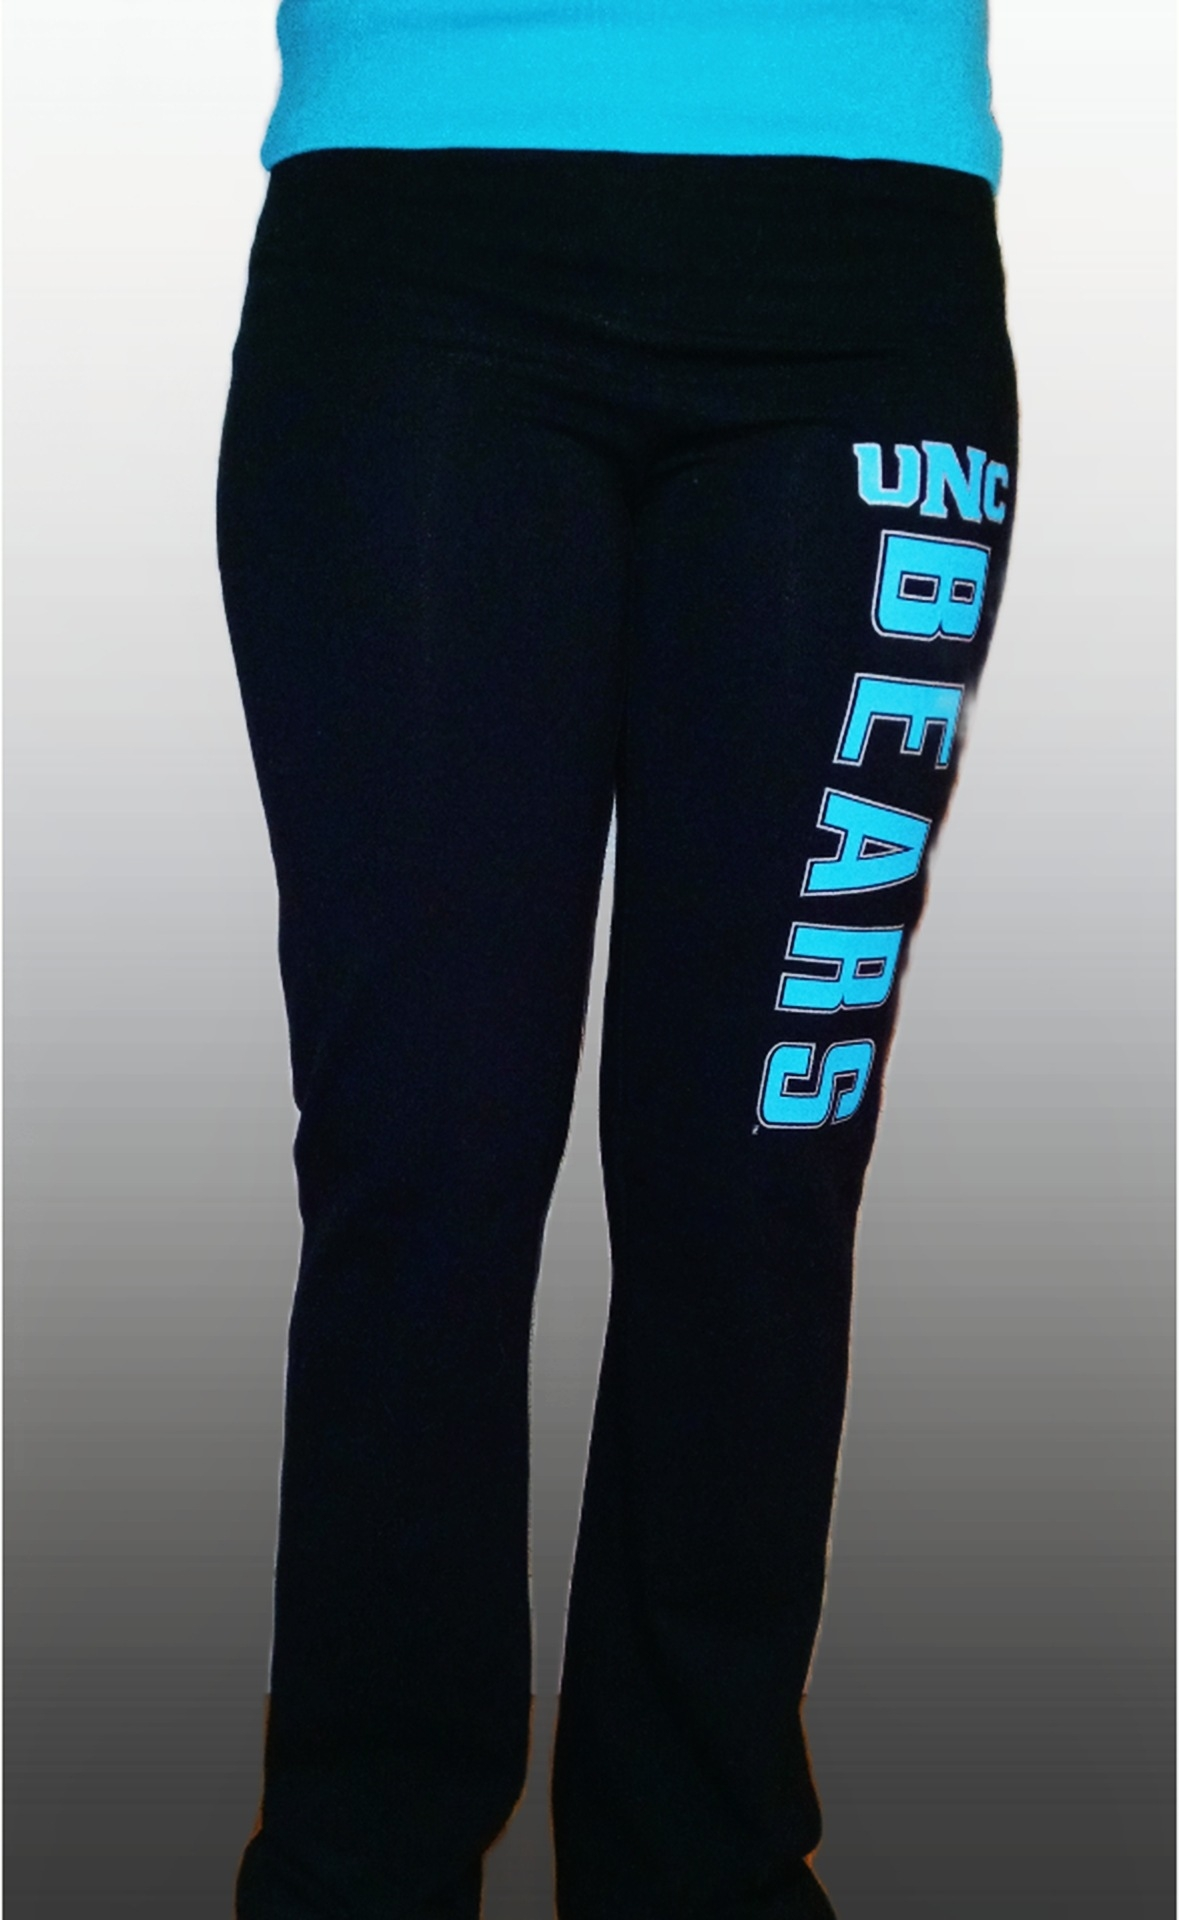 UNC Bears Yoga Pants